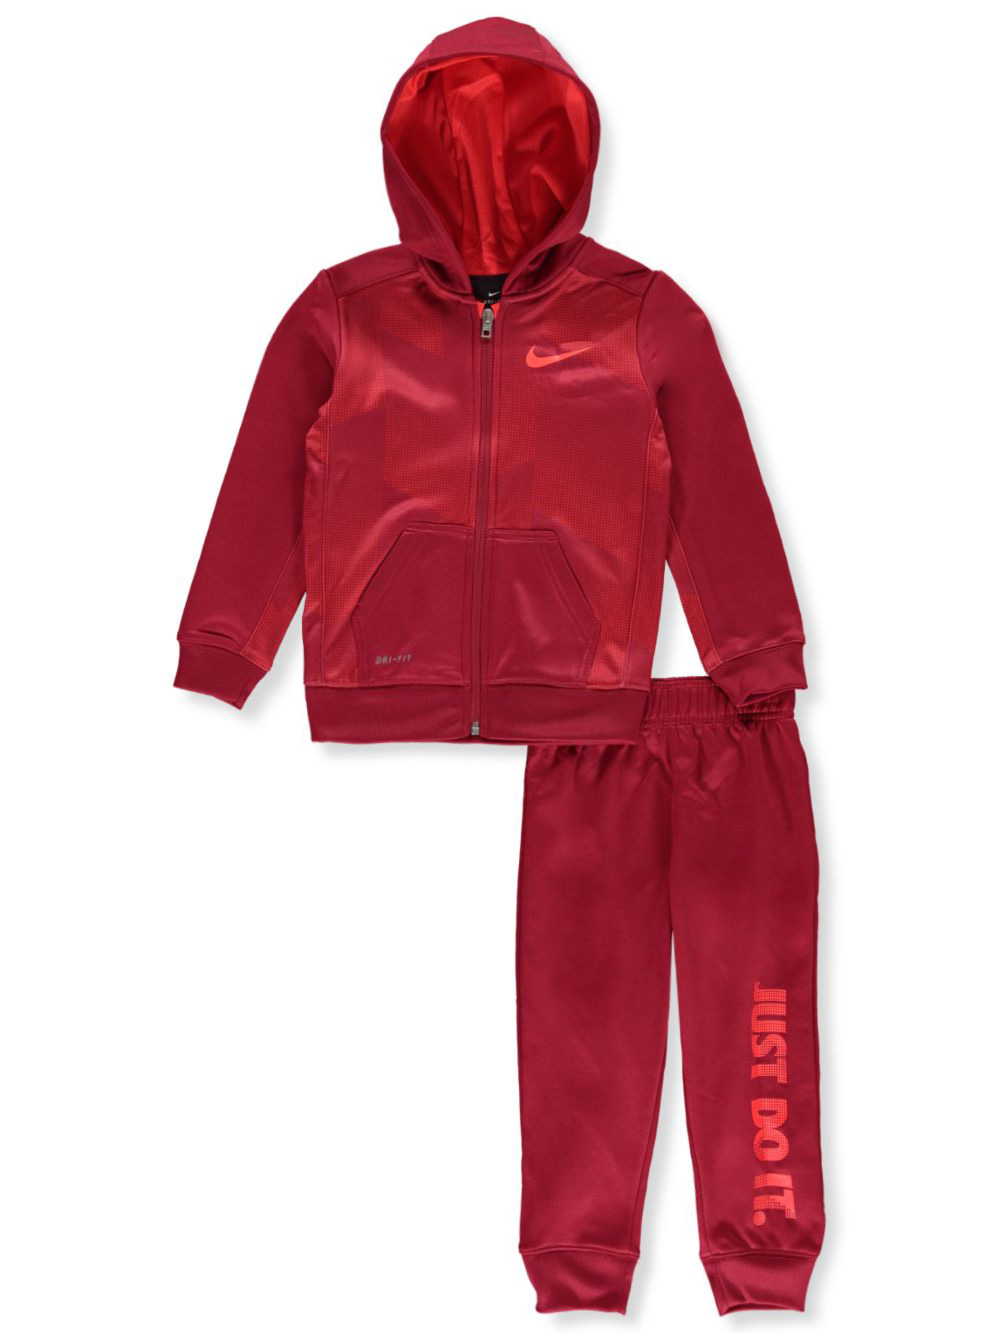 Boys' Dri-Fit 2-Piece Tracksuit Outfit